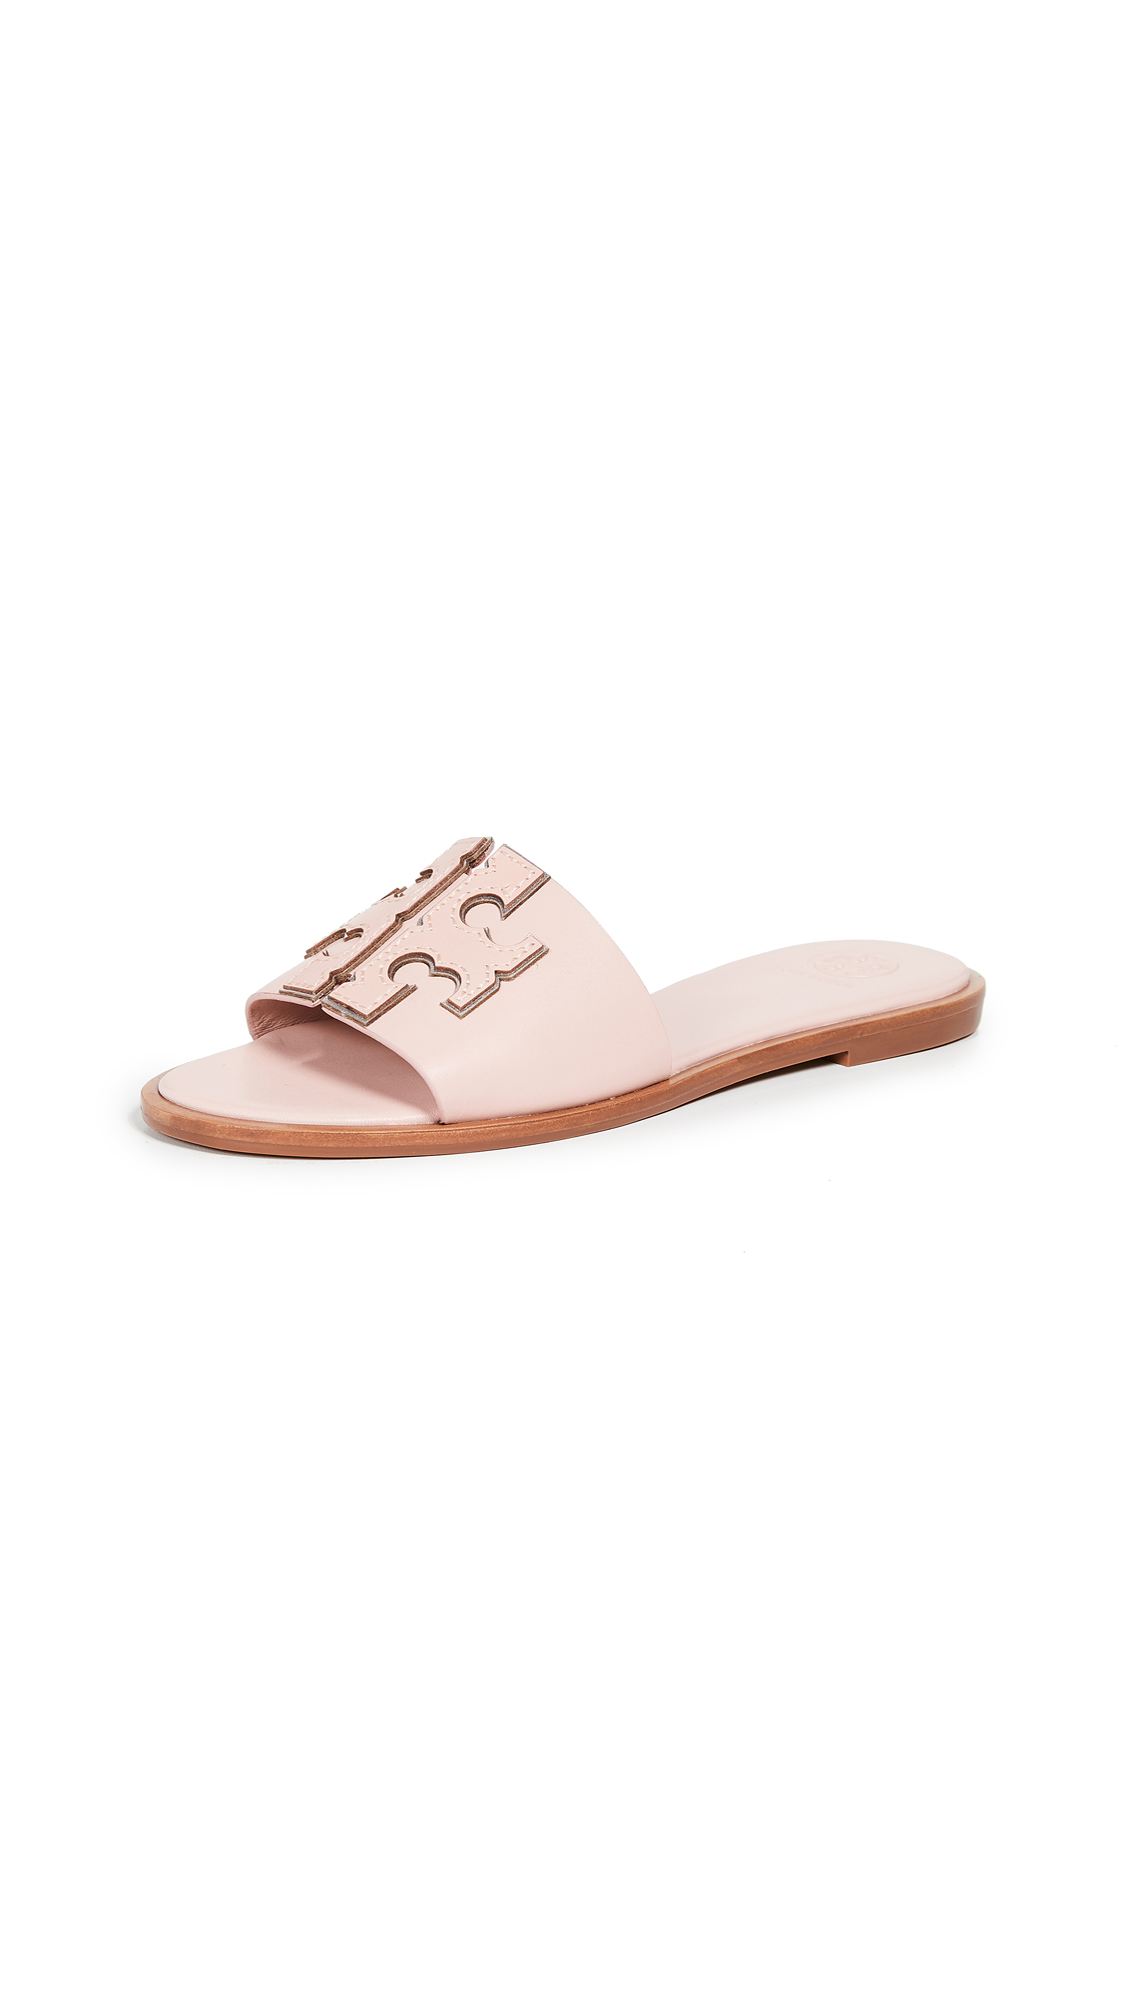 Tory Burch Ines Slide Sandals